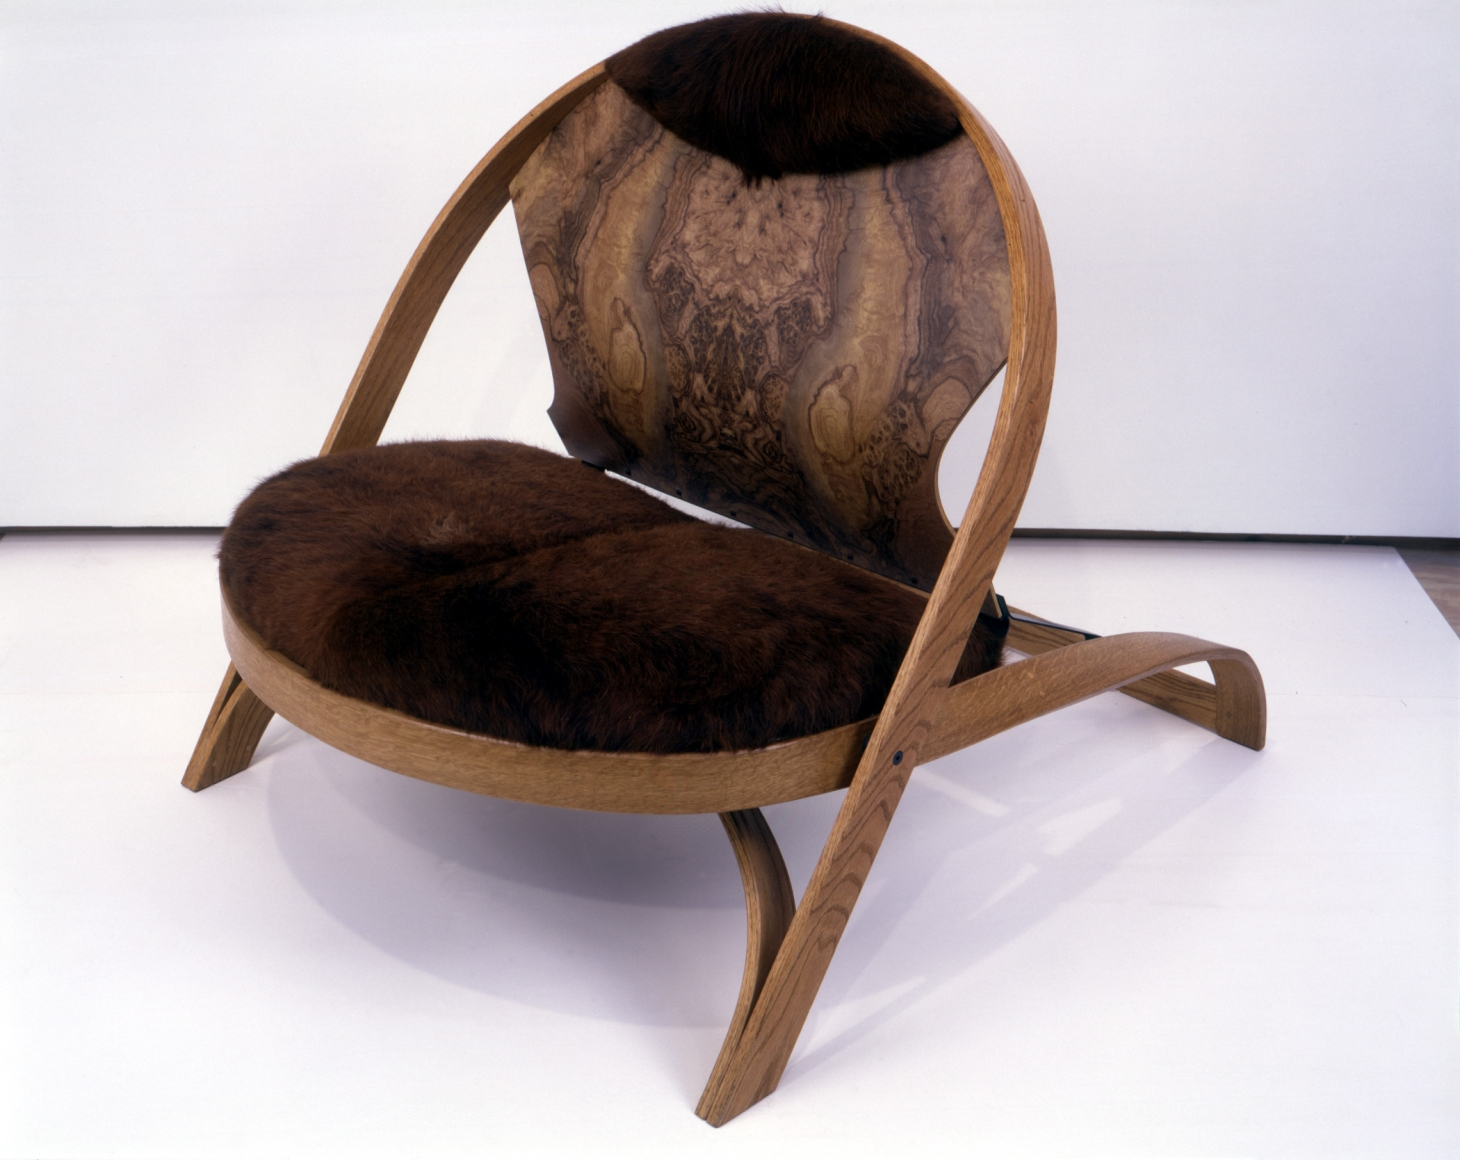 RICHARD ARTSCHWAGER, Chair/Chair, 1987-90